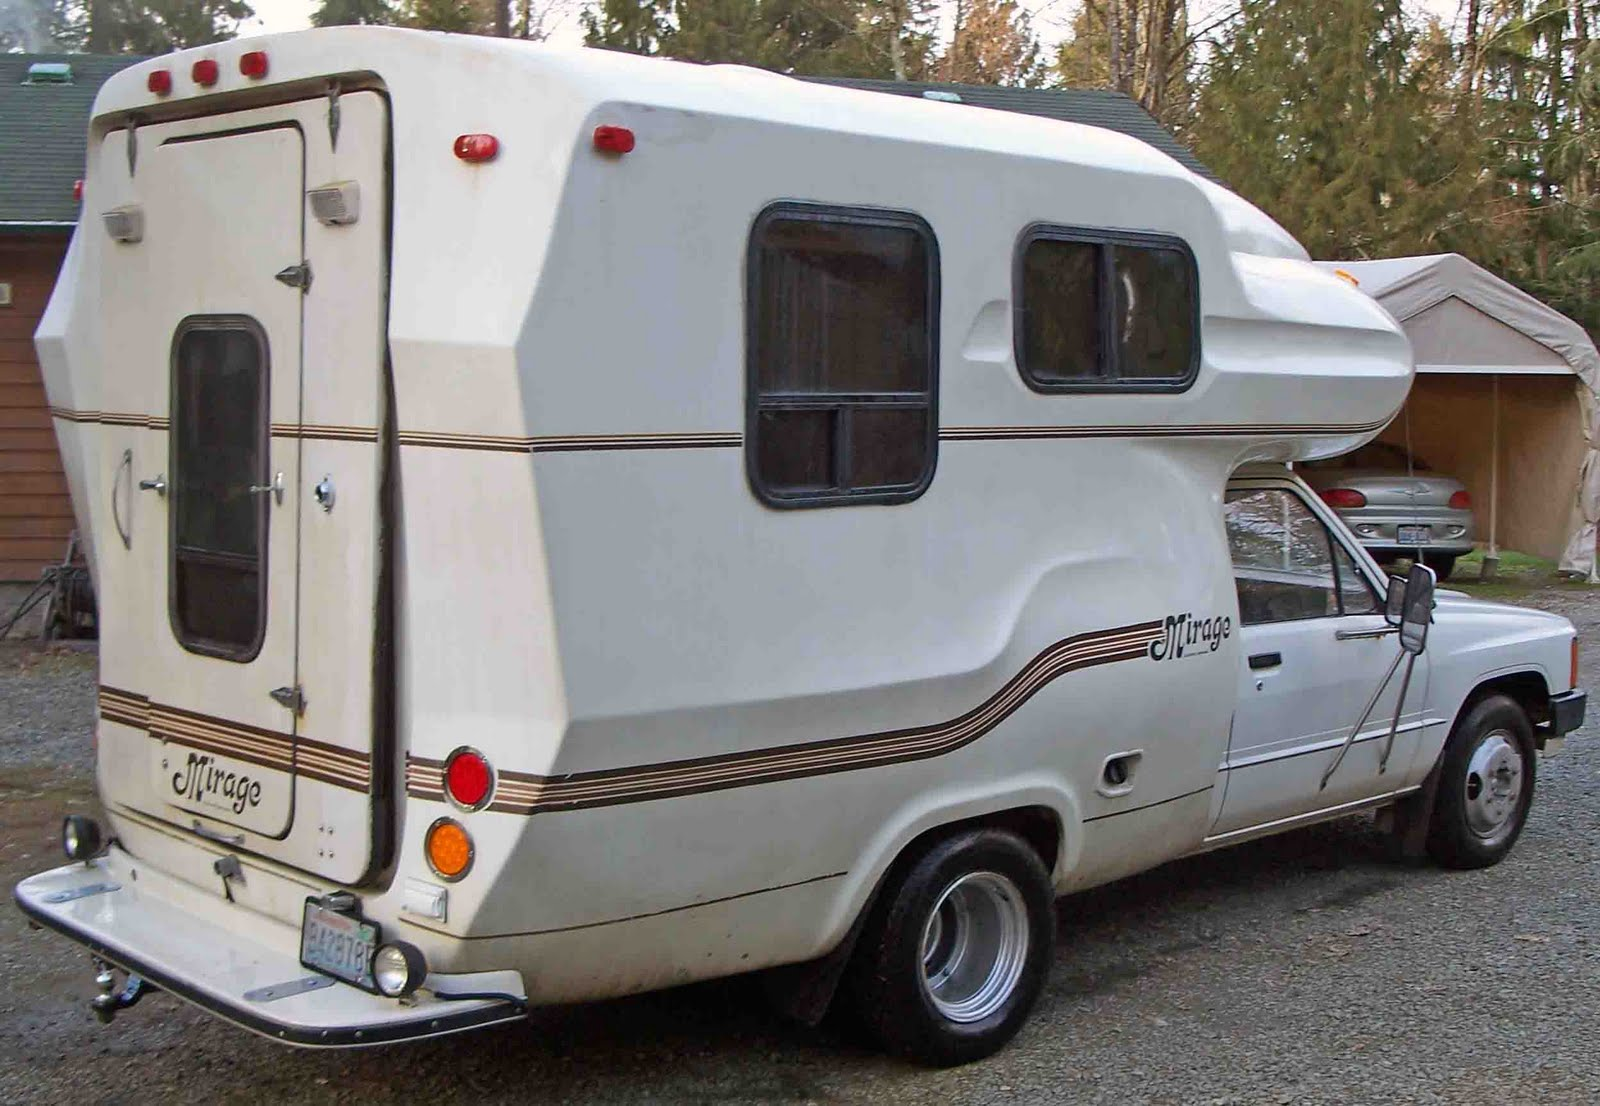 Toyota Mirage Makeover Step 1 Mini Motorhome Research